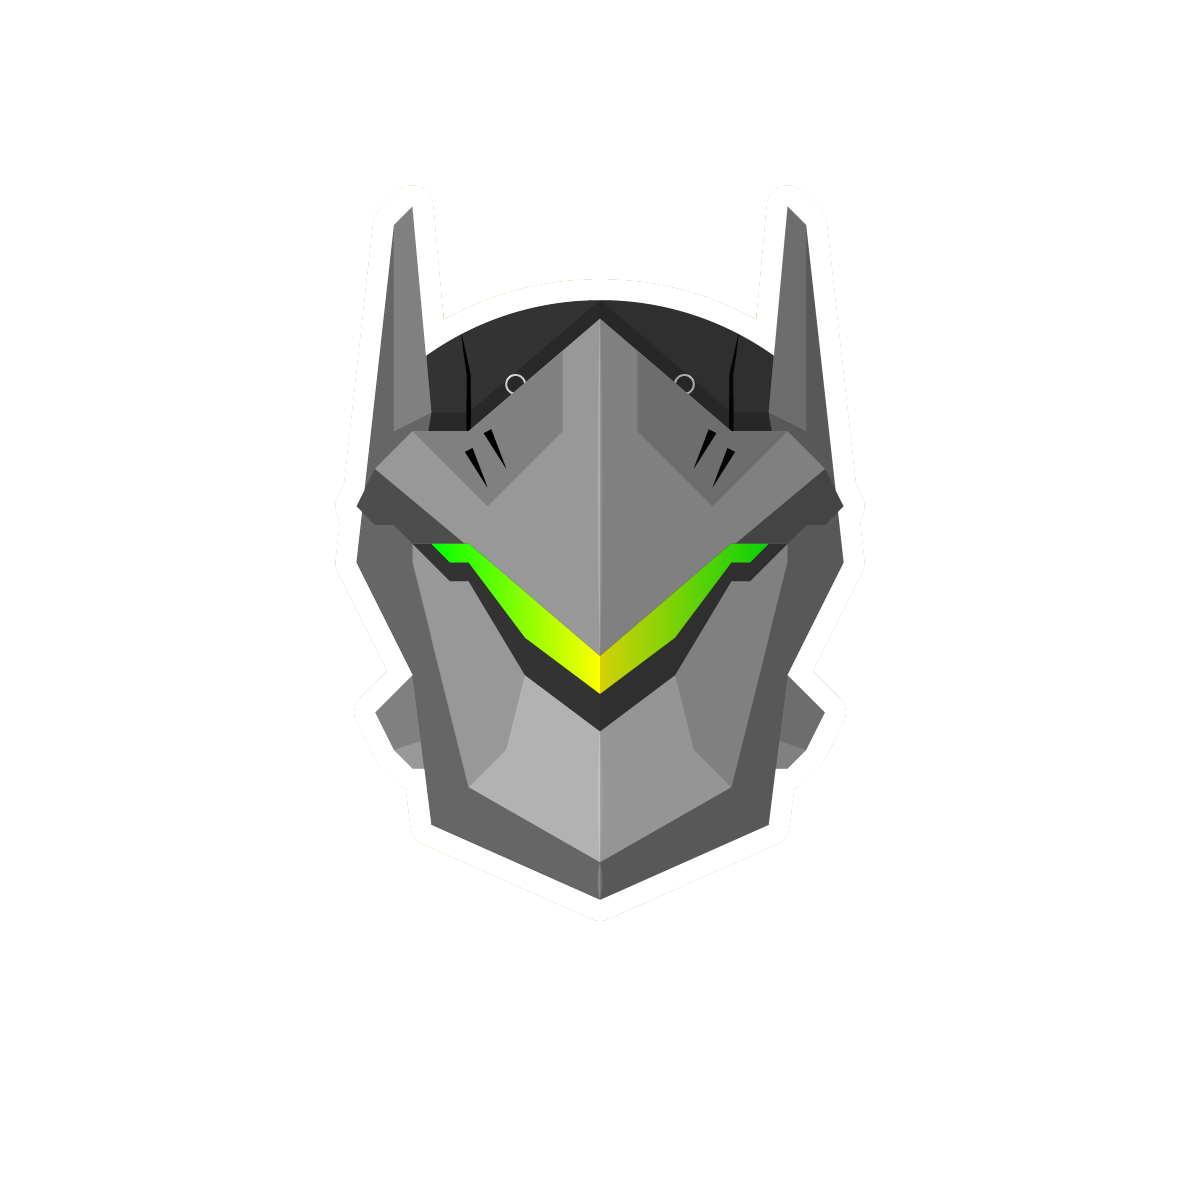 The Heroes Of Overwatch Sticker Pack messages sticker-0